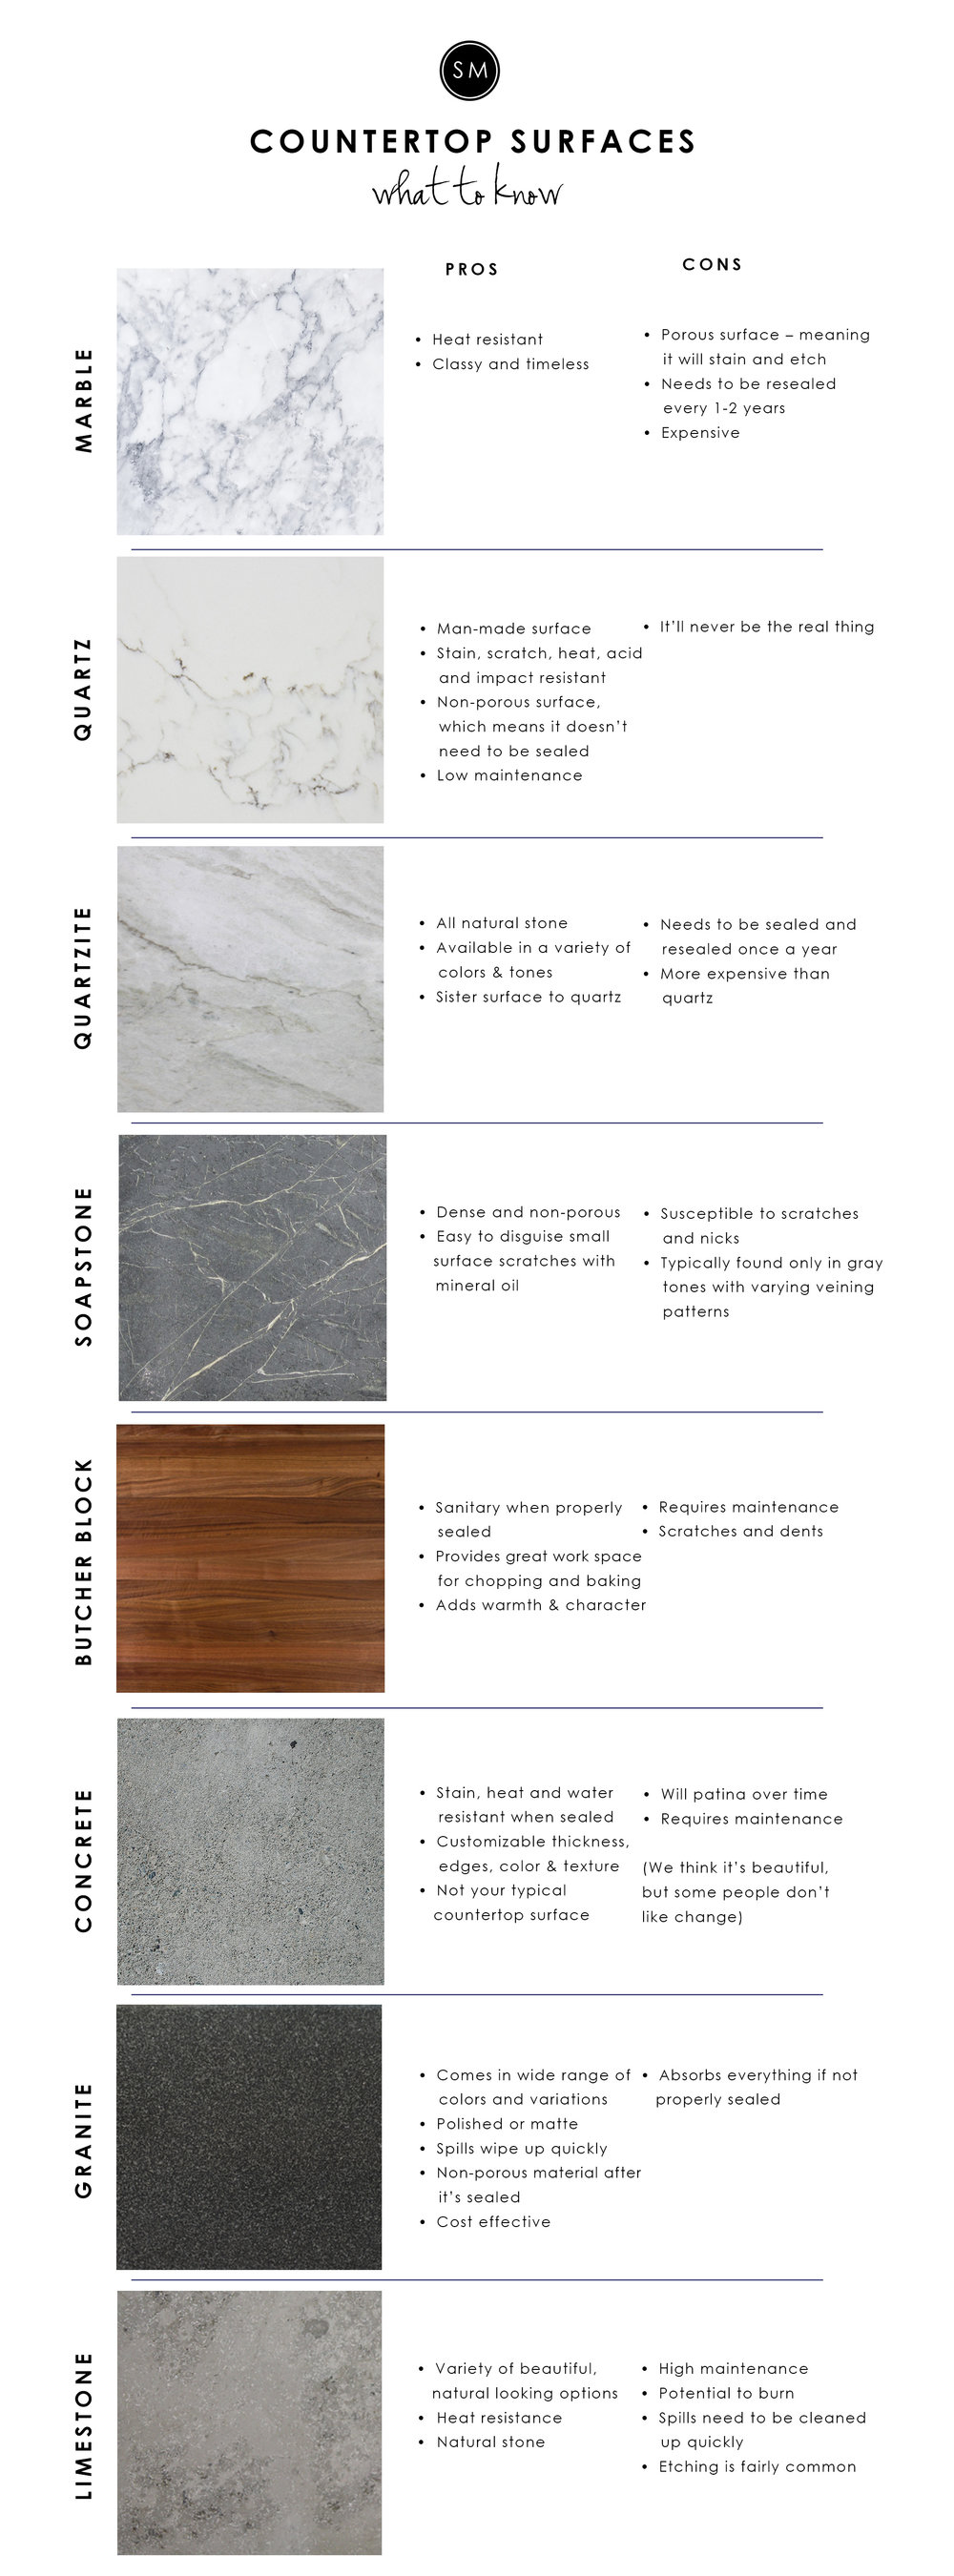 Countertop-Surfaces2.jpg